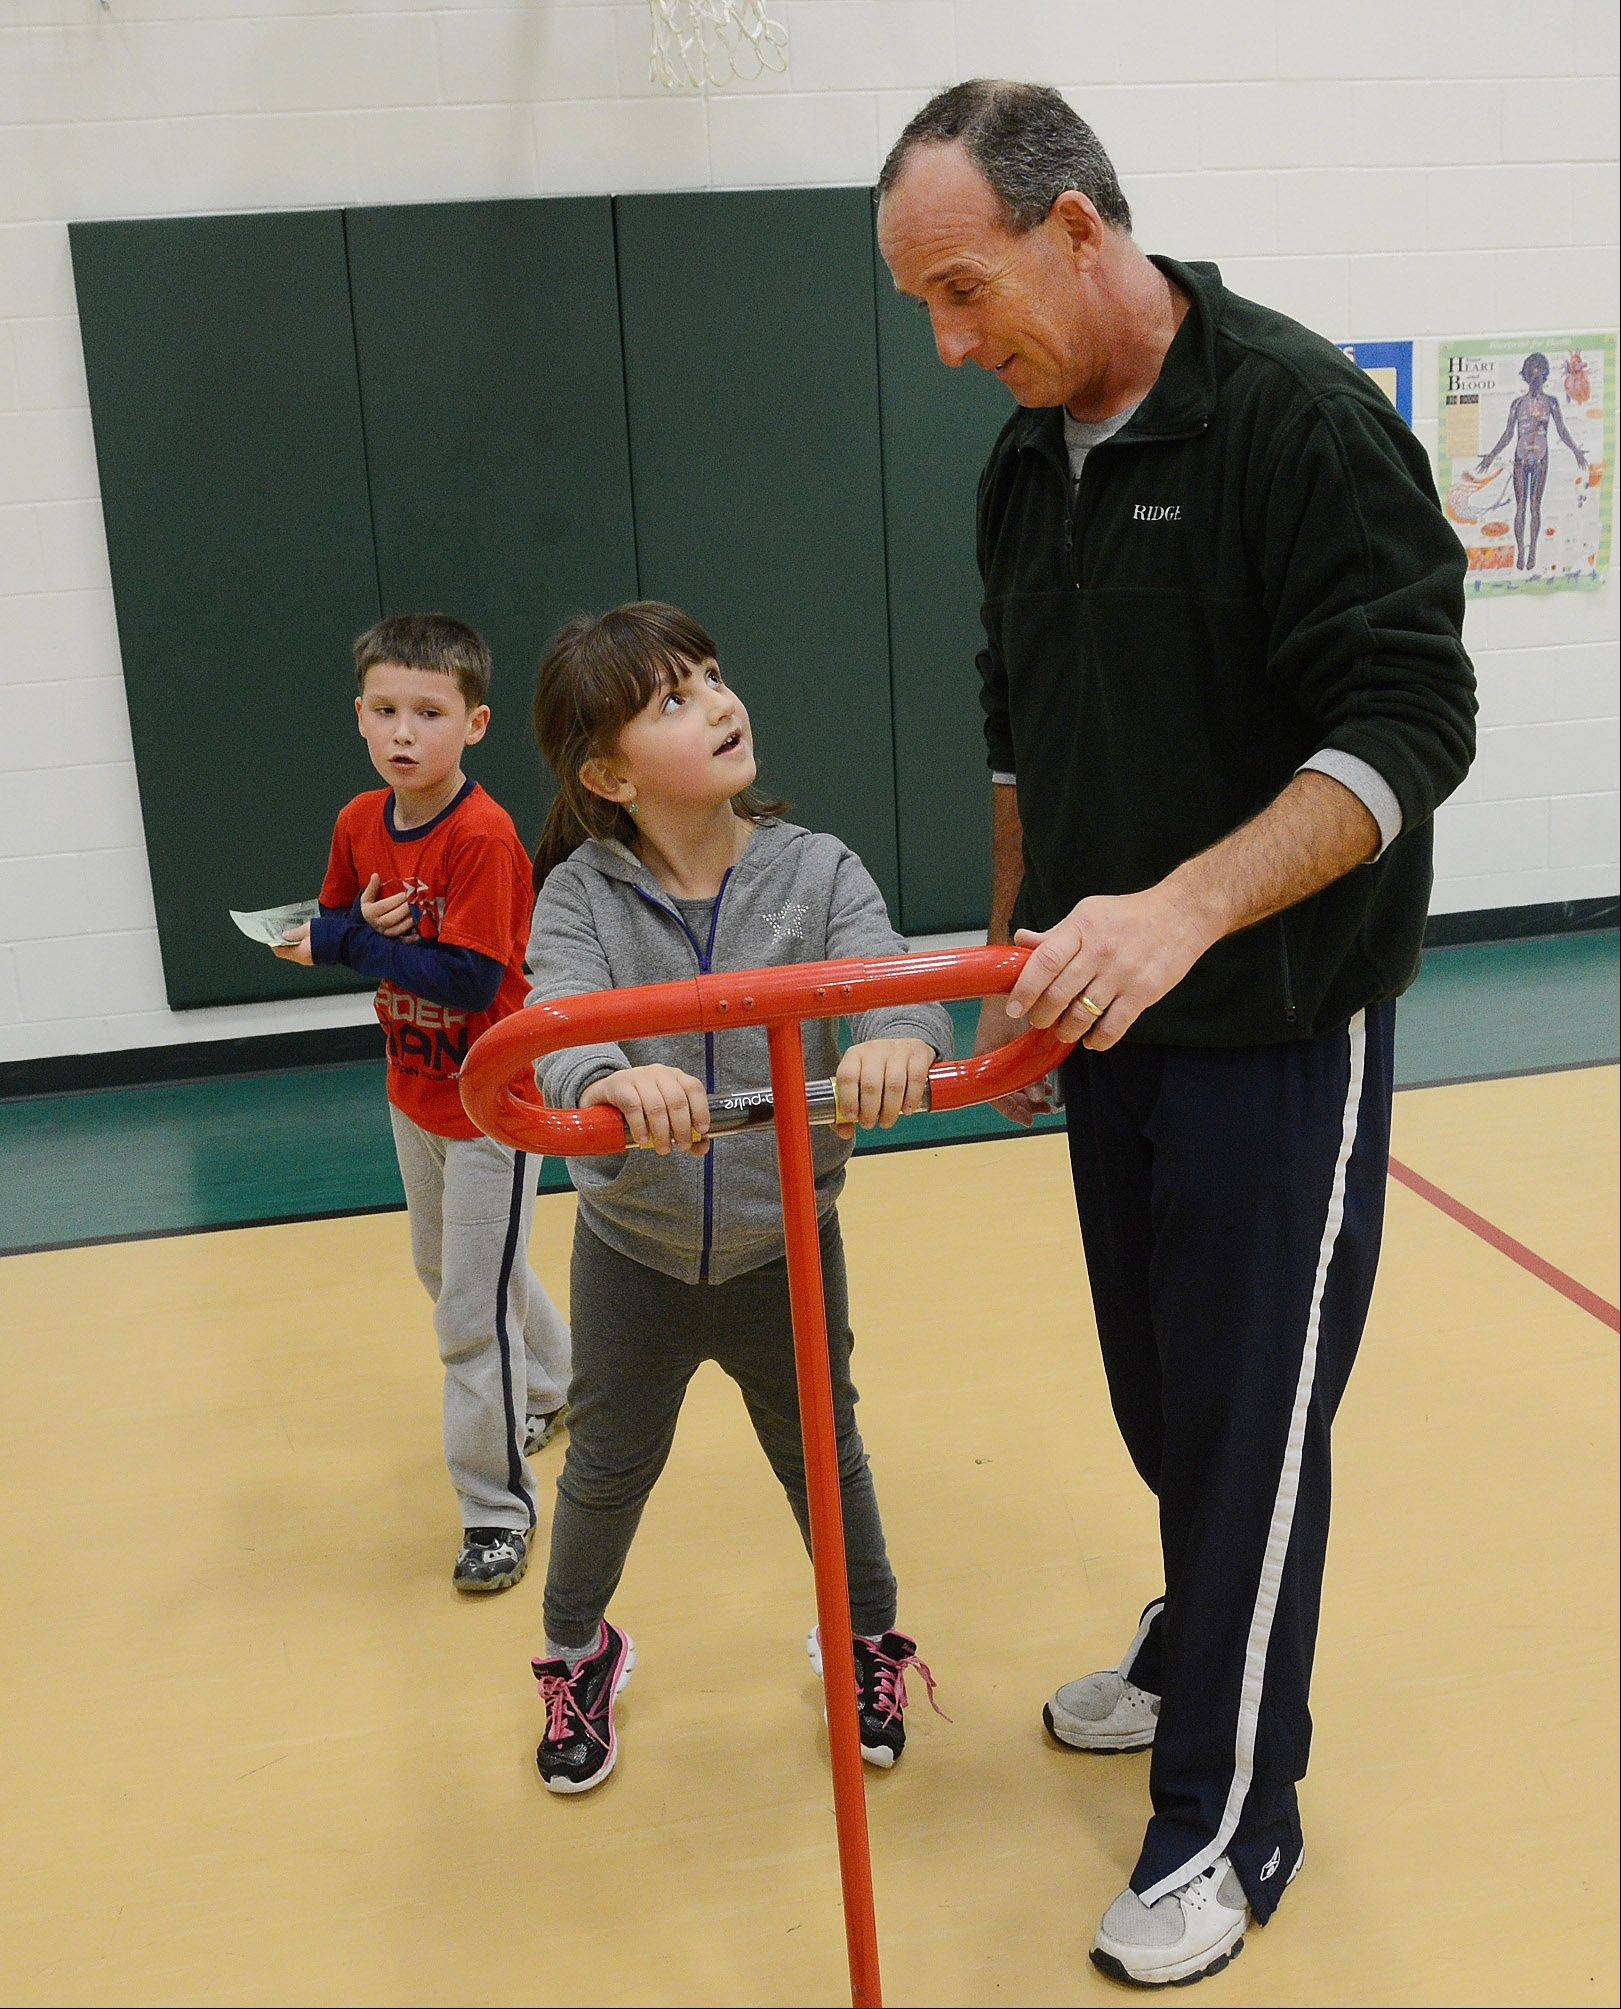 Ridge Family Center for Learning P.E. teacher Will Hogan helps student Maria Irimia check her heart rate on a digital monitor. The goal during a recent cardio day in gym class was to maintain a heart rate above 125 beats per minute.